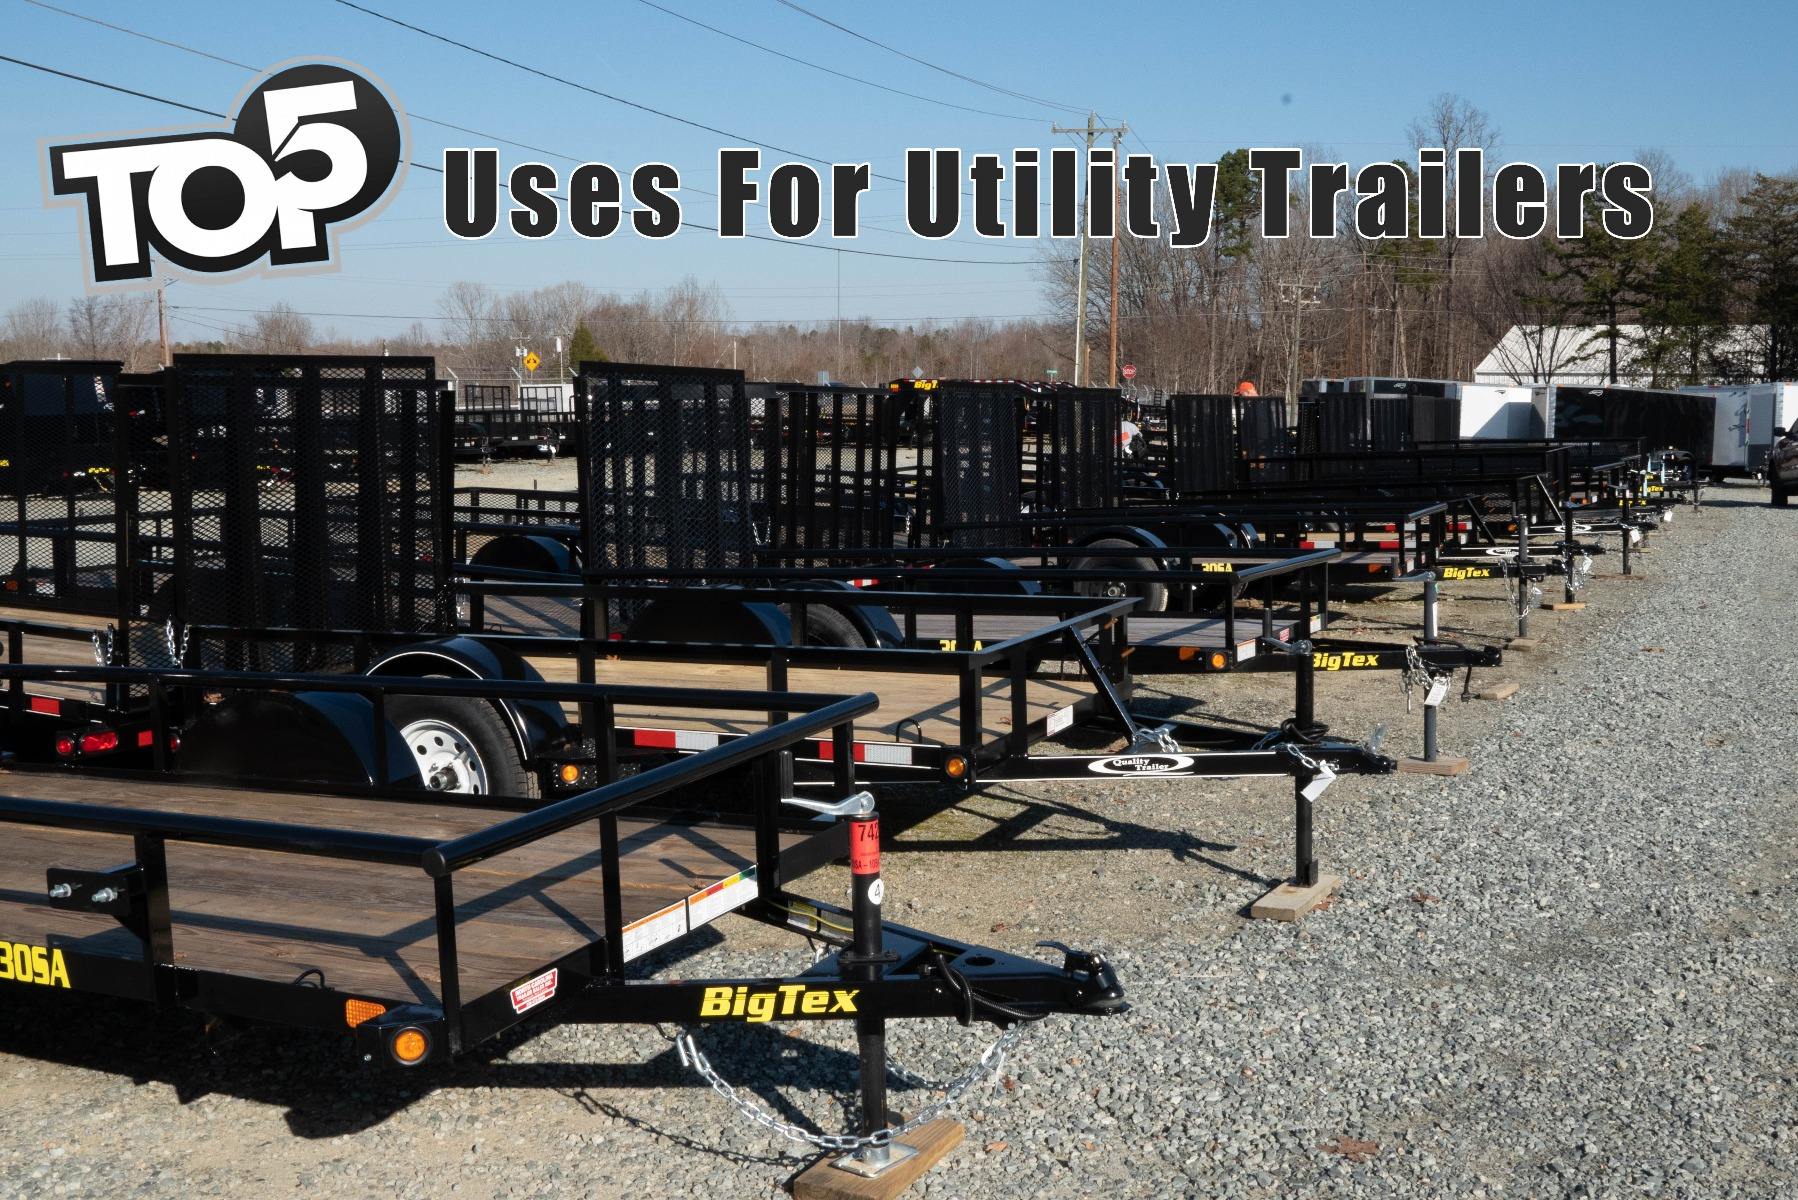 Top 5 Uses For Utility Trailers